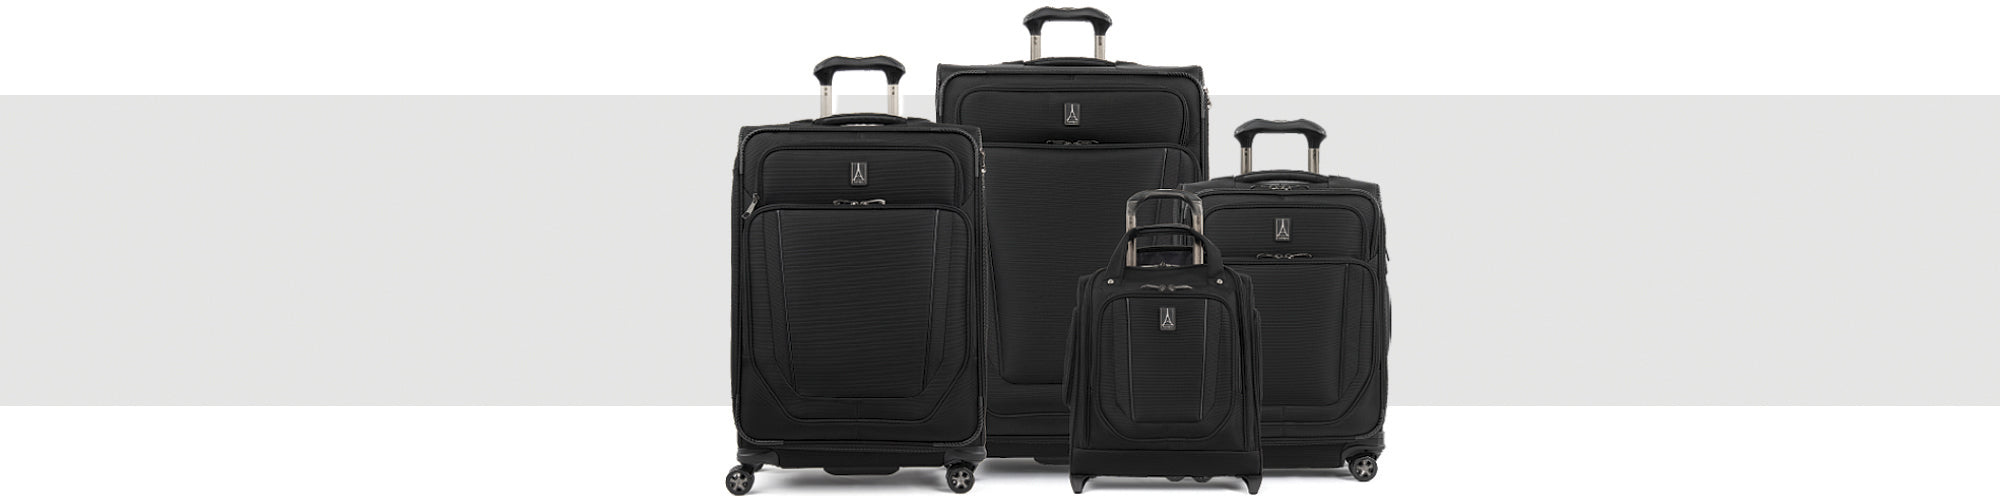 different size luggage